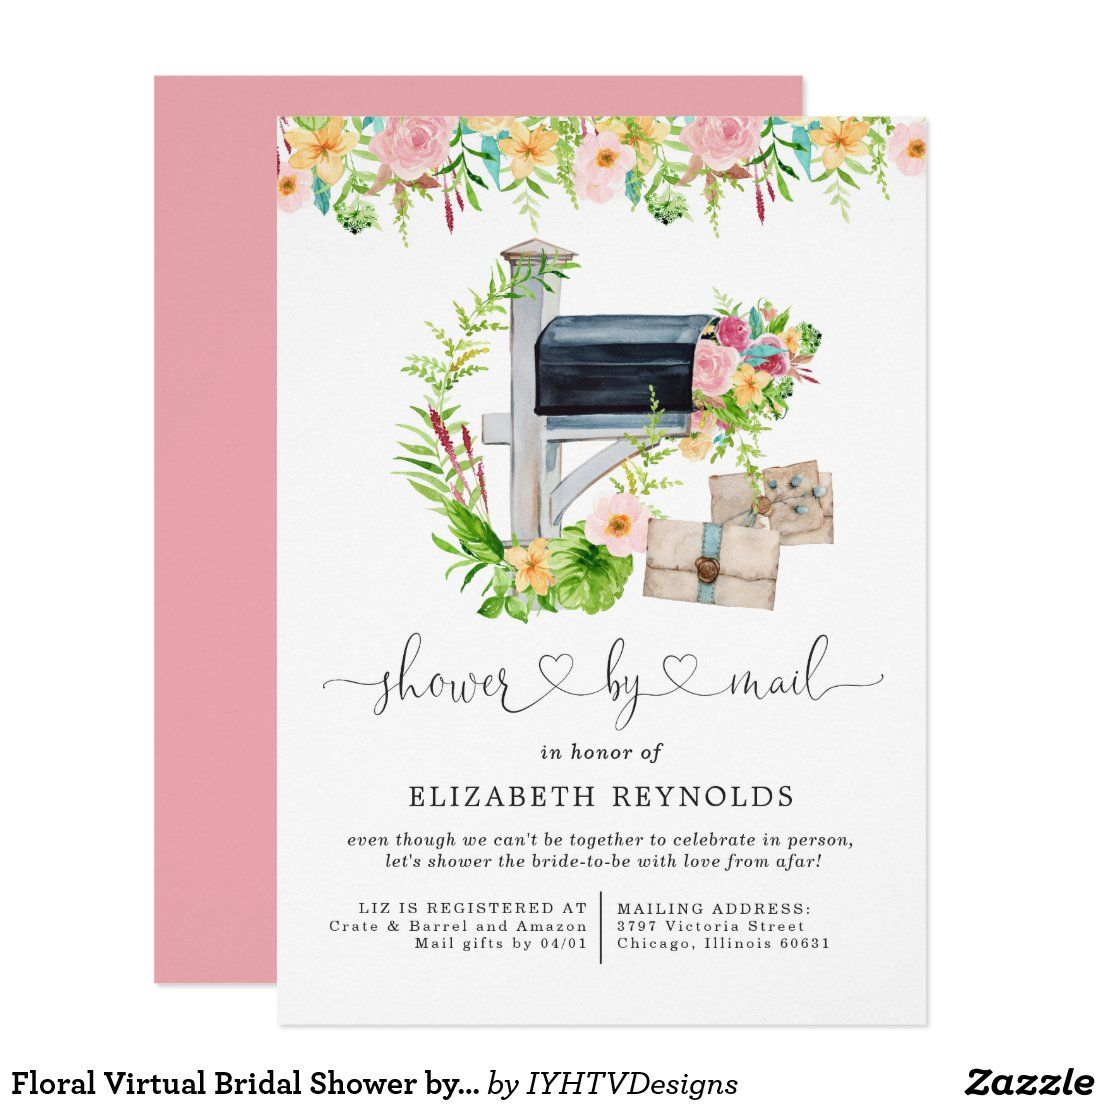 Floral Virtual Bridal Shower By Mail Invitation Zazzle Com In 2020 Floral Bridal Shower Invitations Bridal Shower Bridal Shower Invitations